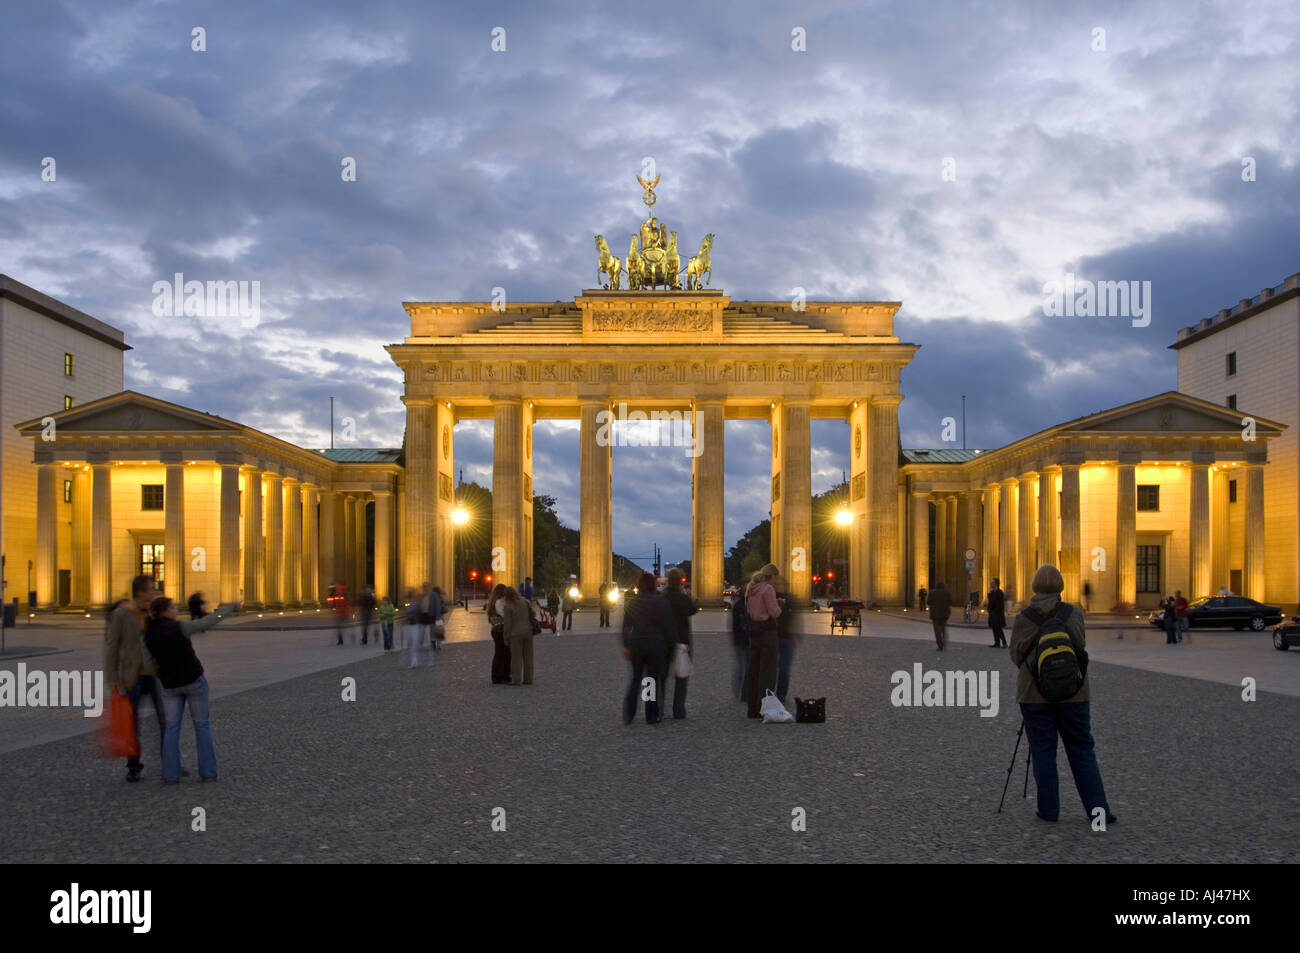 An HDR image of tourists at the Brandenburger Tor or Brandenburg Gate at sunset dusk. - Stock Image